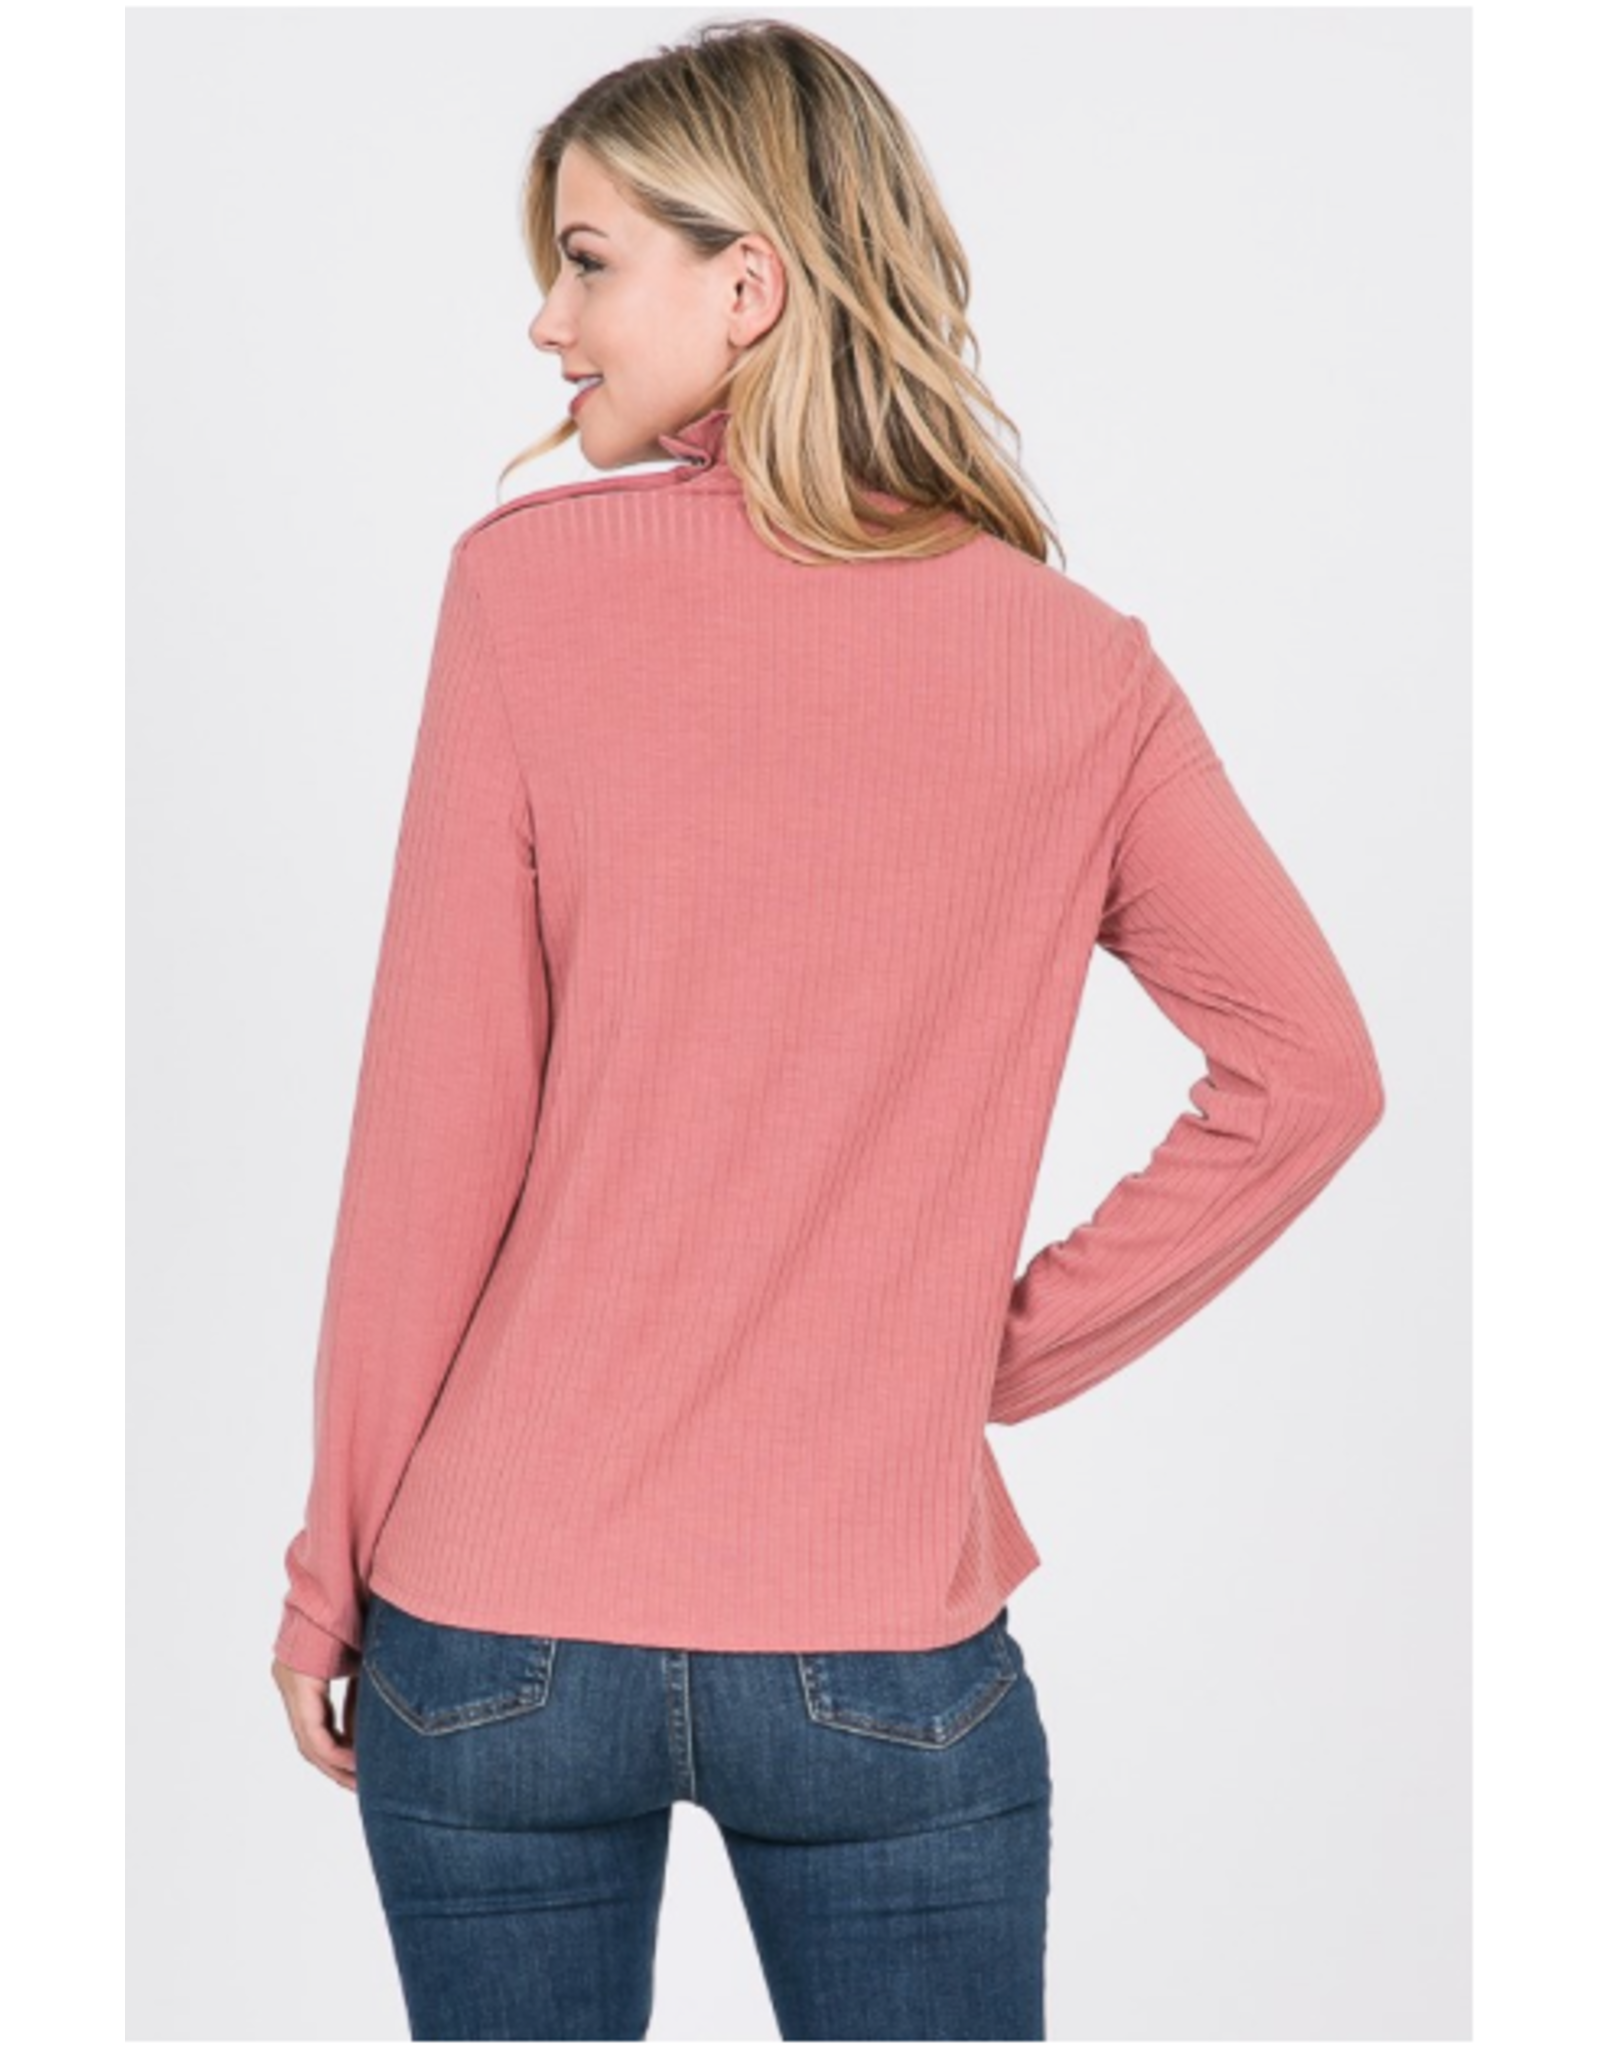 Fawn - high neck top